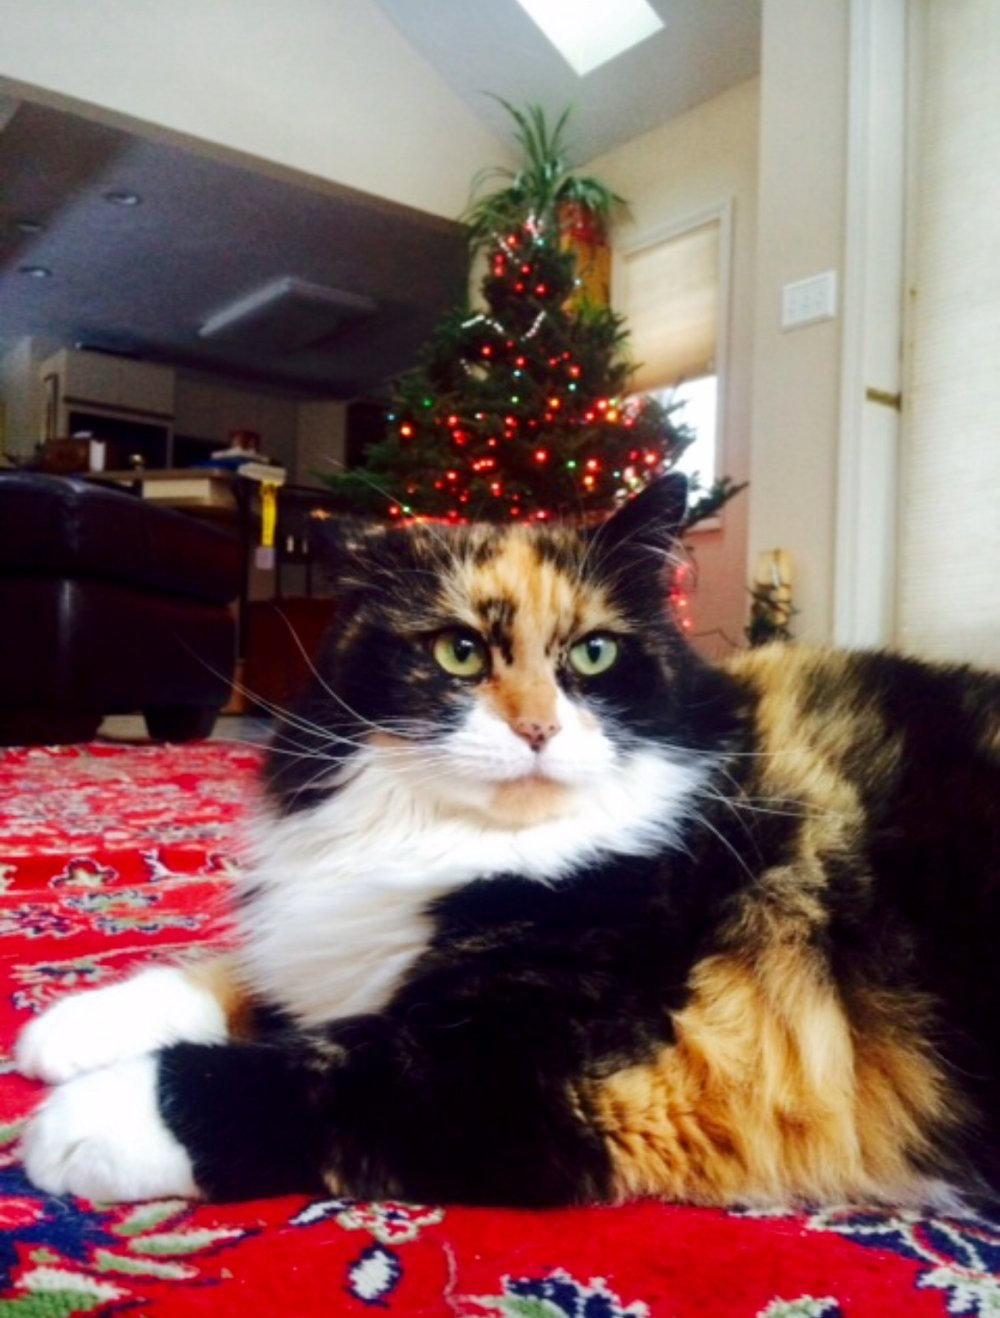 Sophie Cat looking quite proud of her earlier handiwork, with the tree in the background, now secured to the wall!